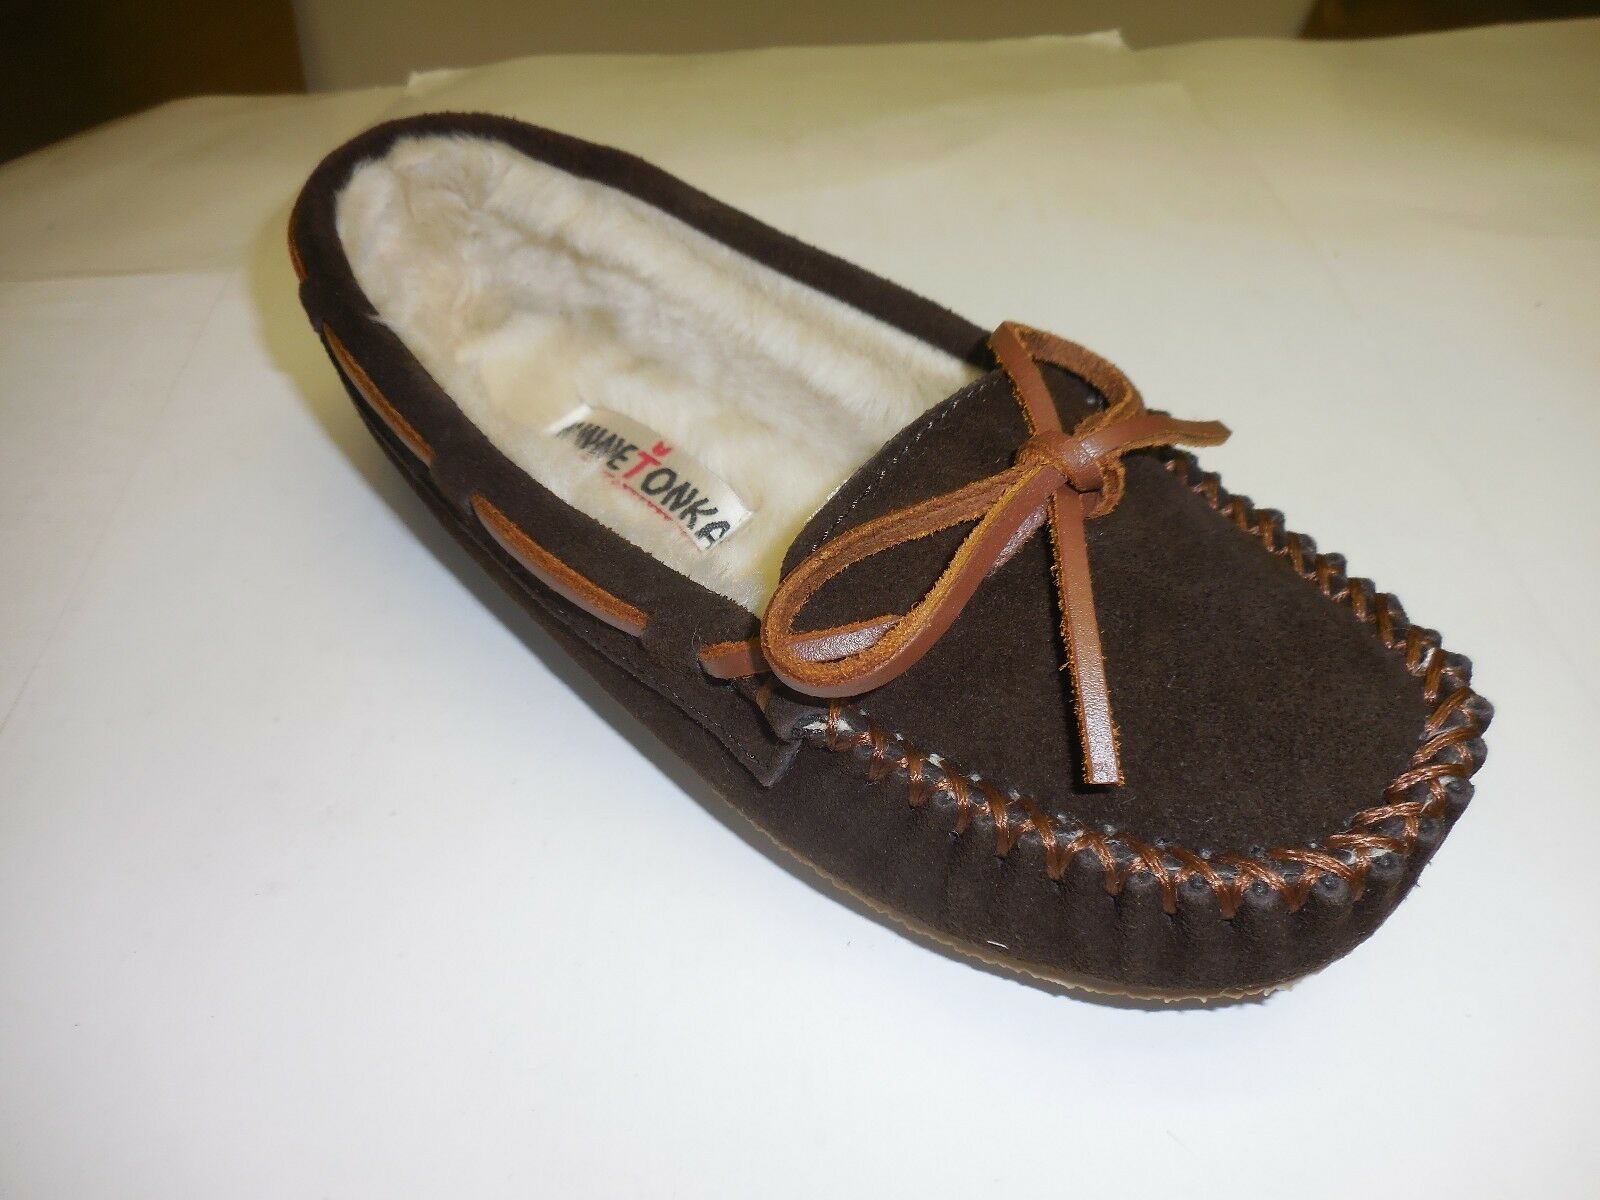 Minnetonka Moccasin Women's Chocolate Cally Trapper Moccasins Sizes  6,7,8,9 &10